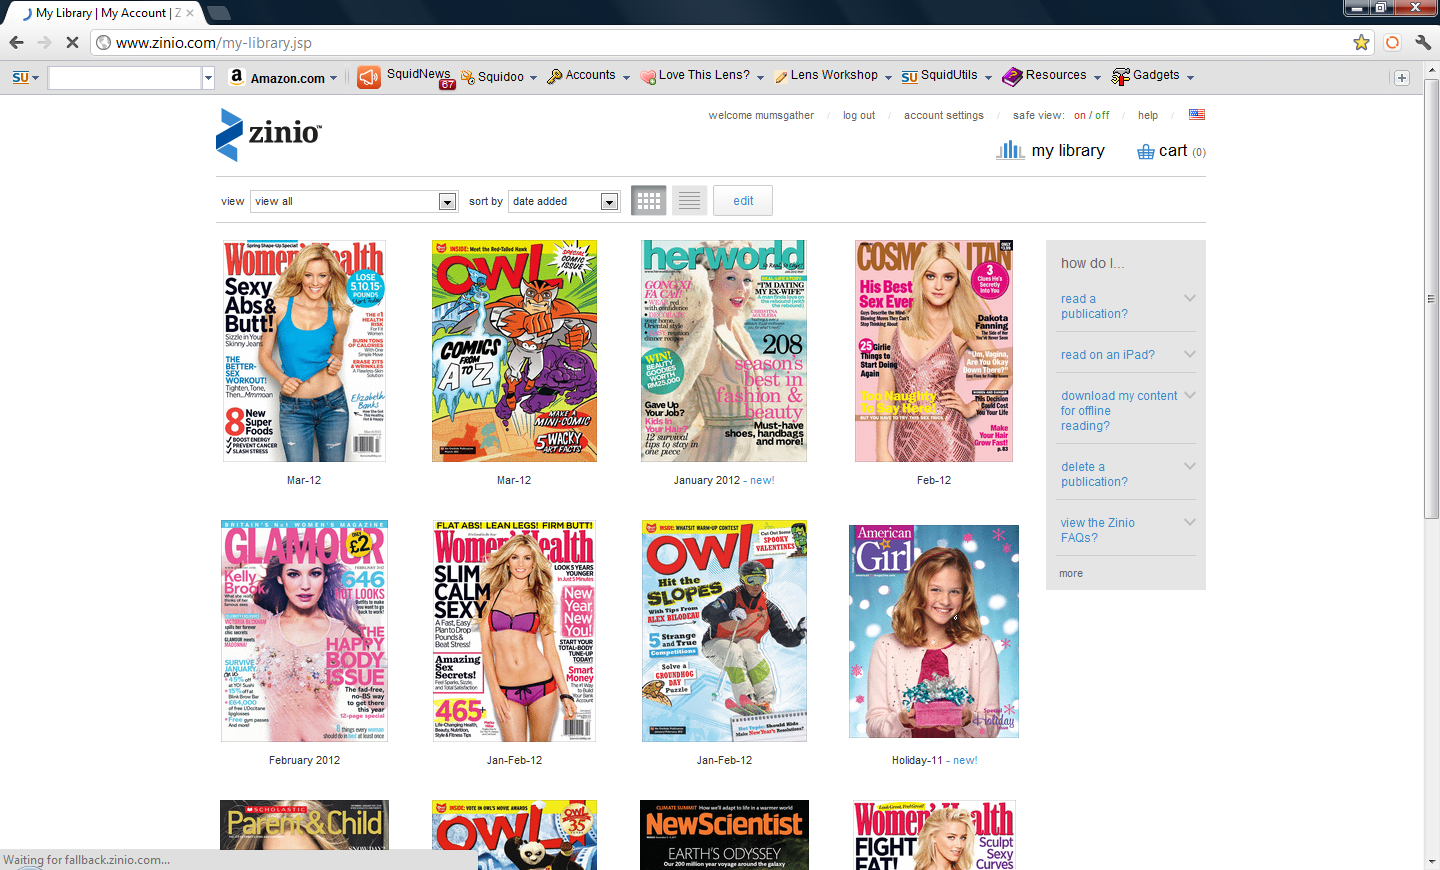 Zinio is my favorite Android App for reading magazines